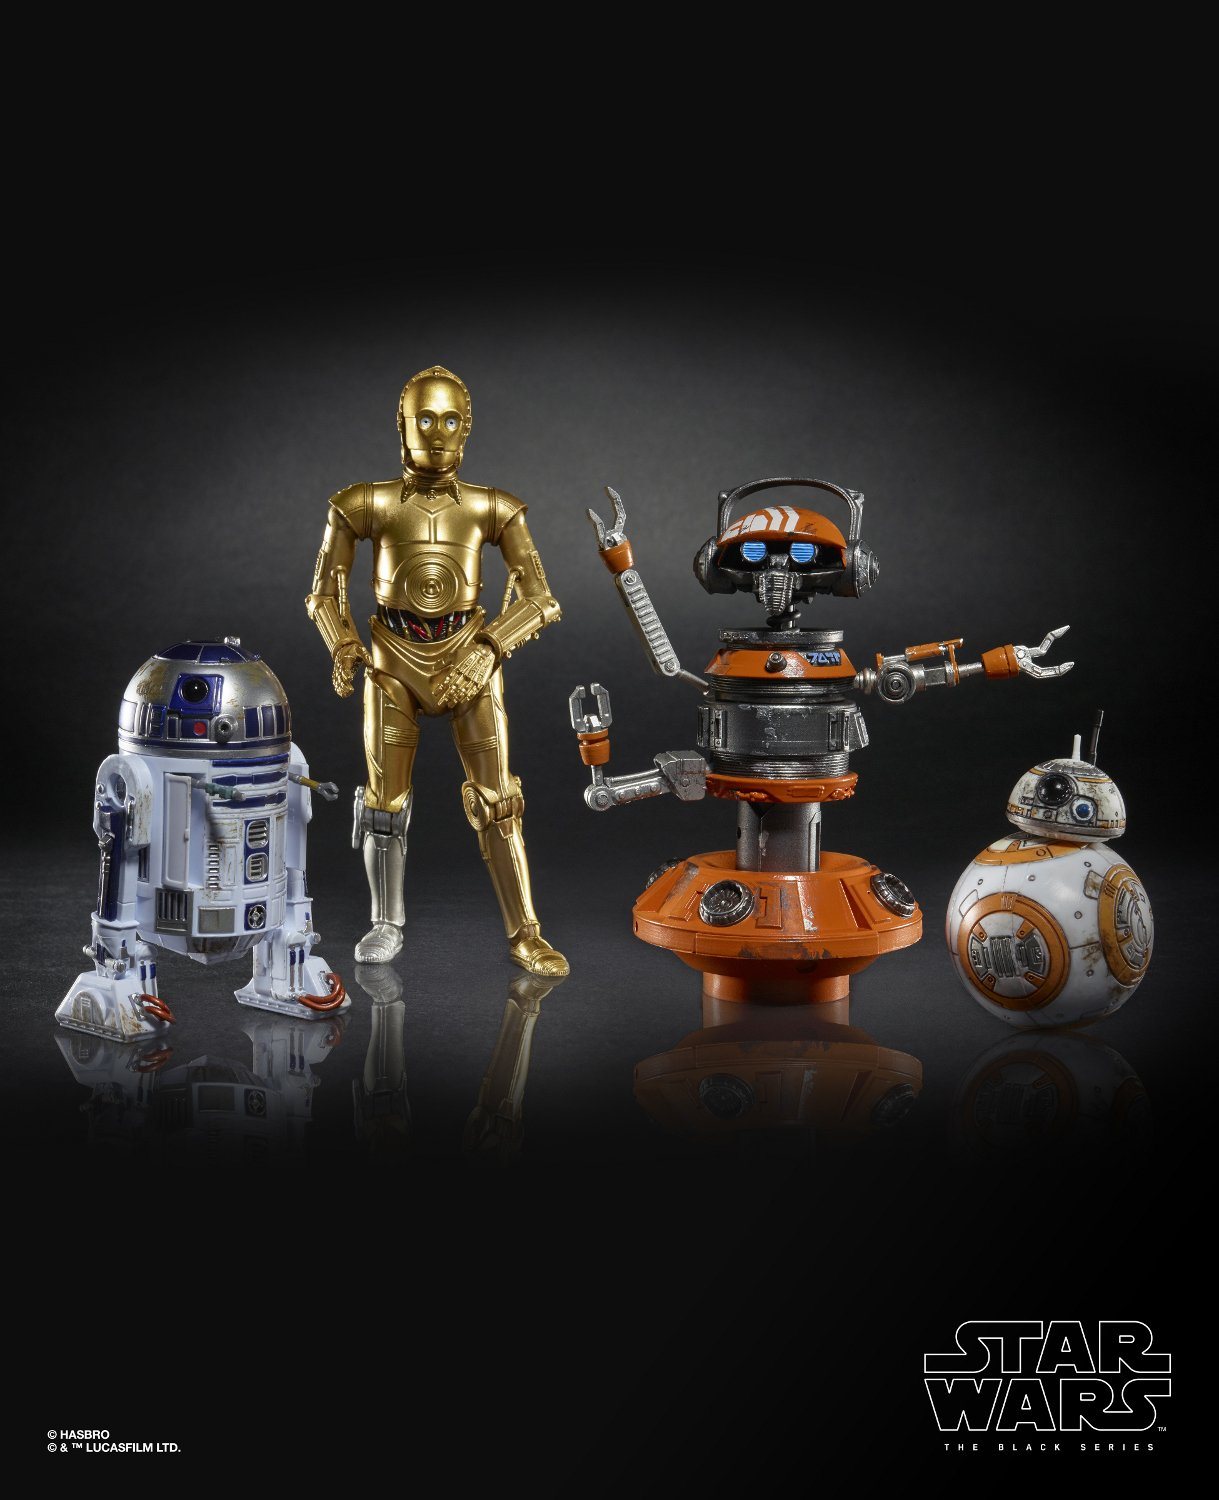 STAR-WARS-THE-BLACK-SERIES-6-INCH-DROID-